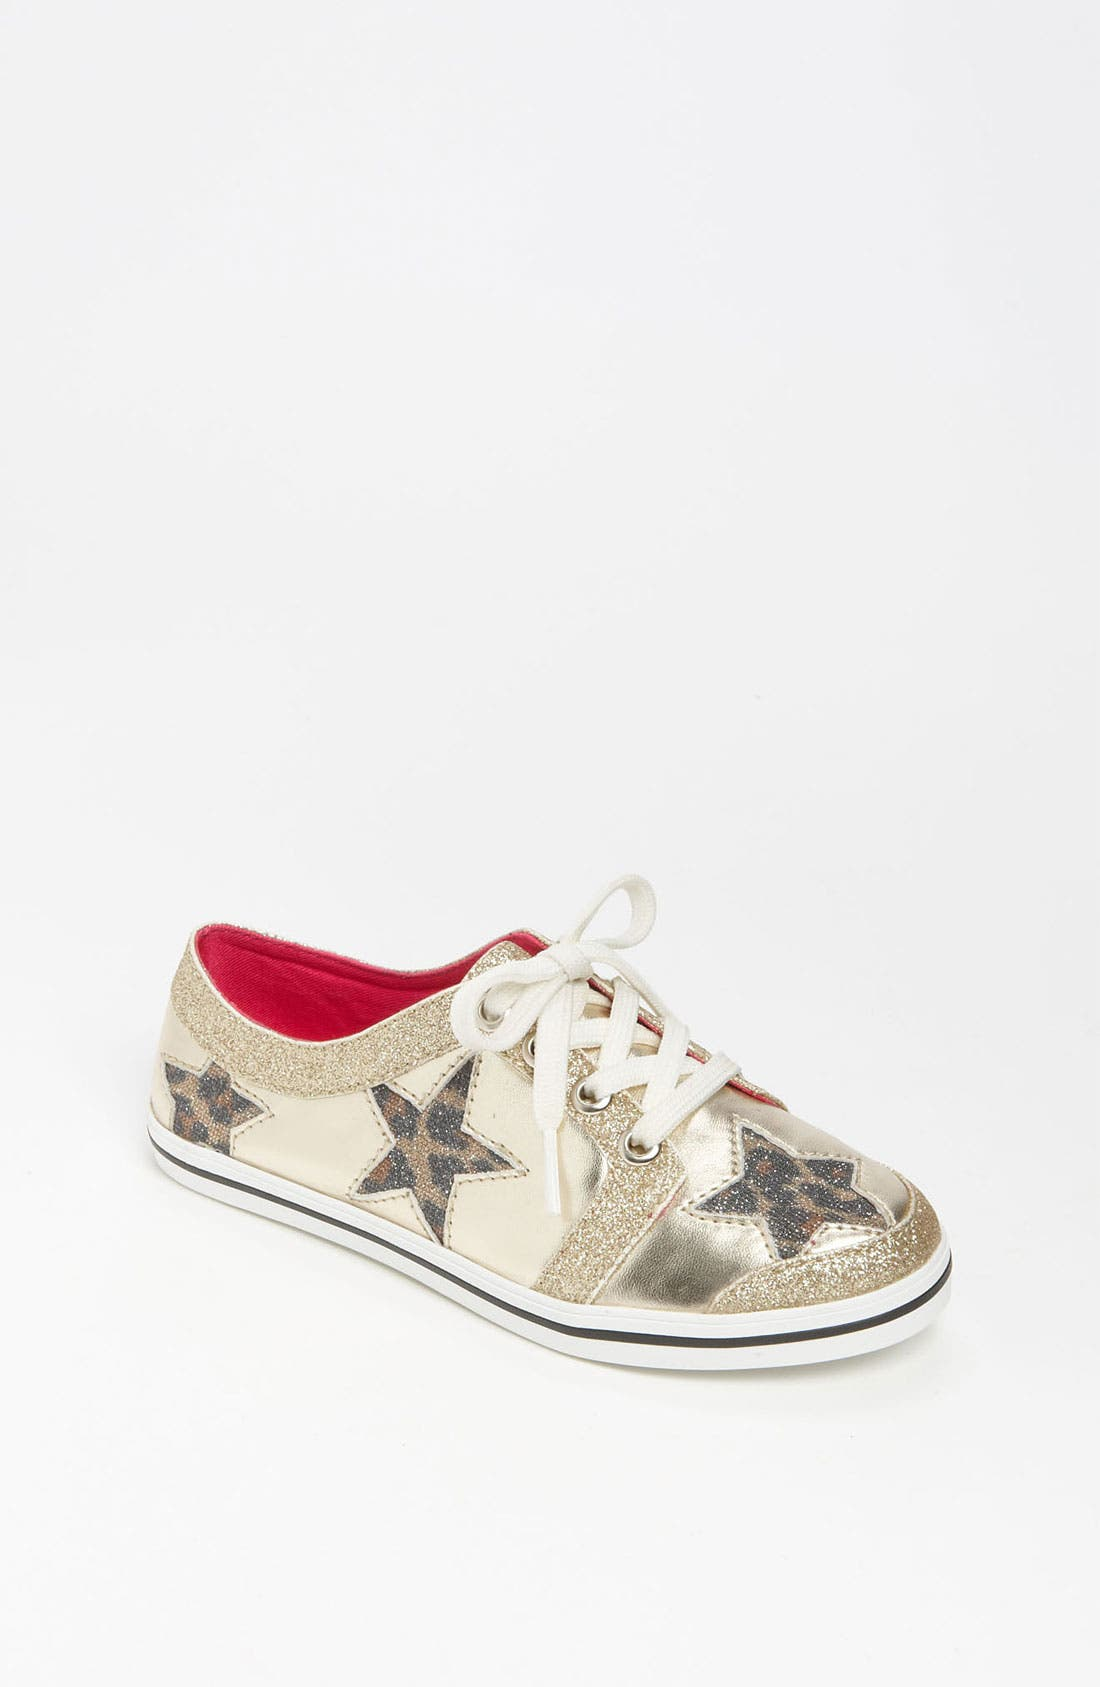 Main Image - Juicy Couture 'Star' Sneaker (Toddler, Little Kid & Big Kid)